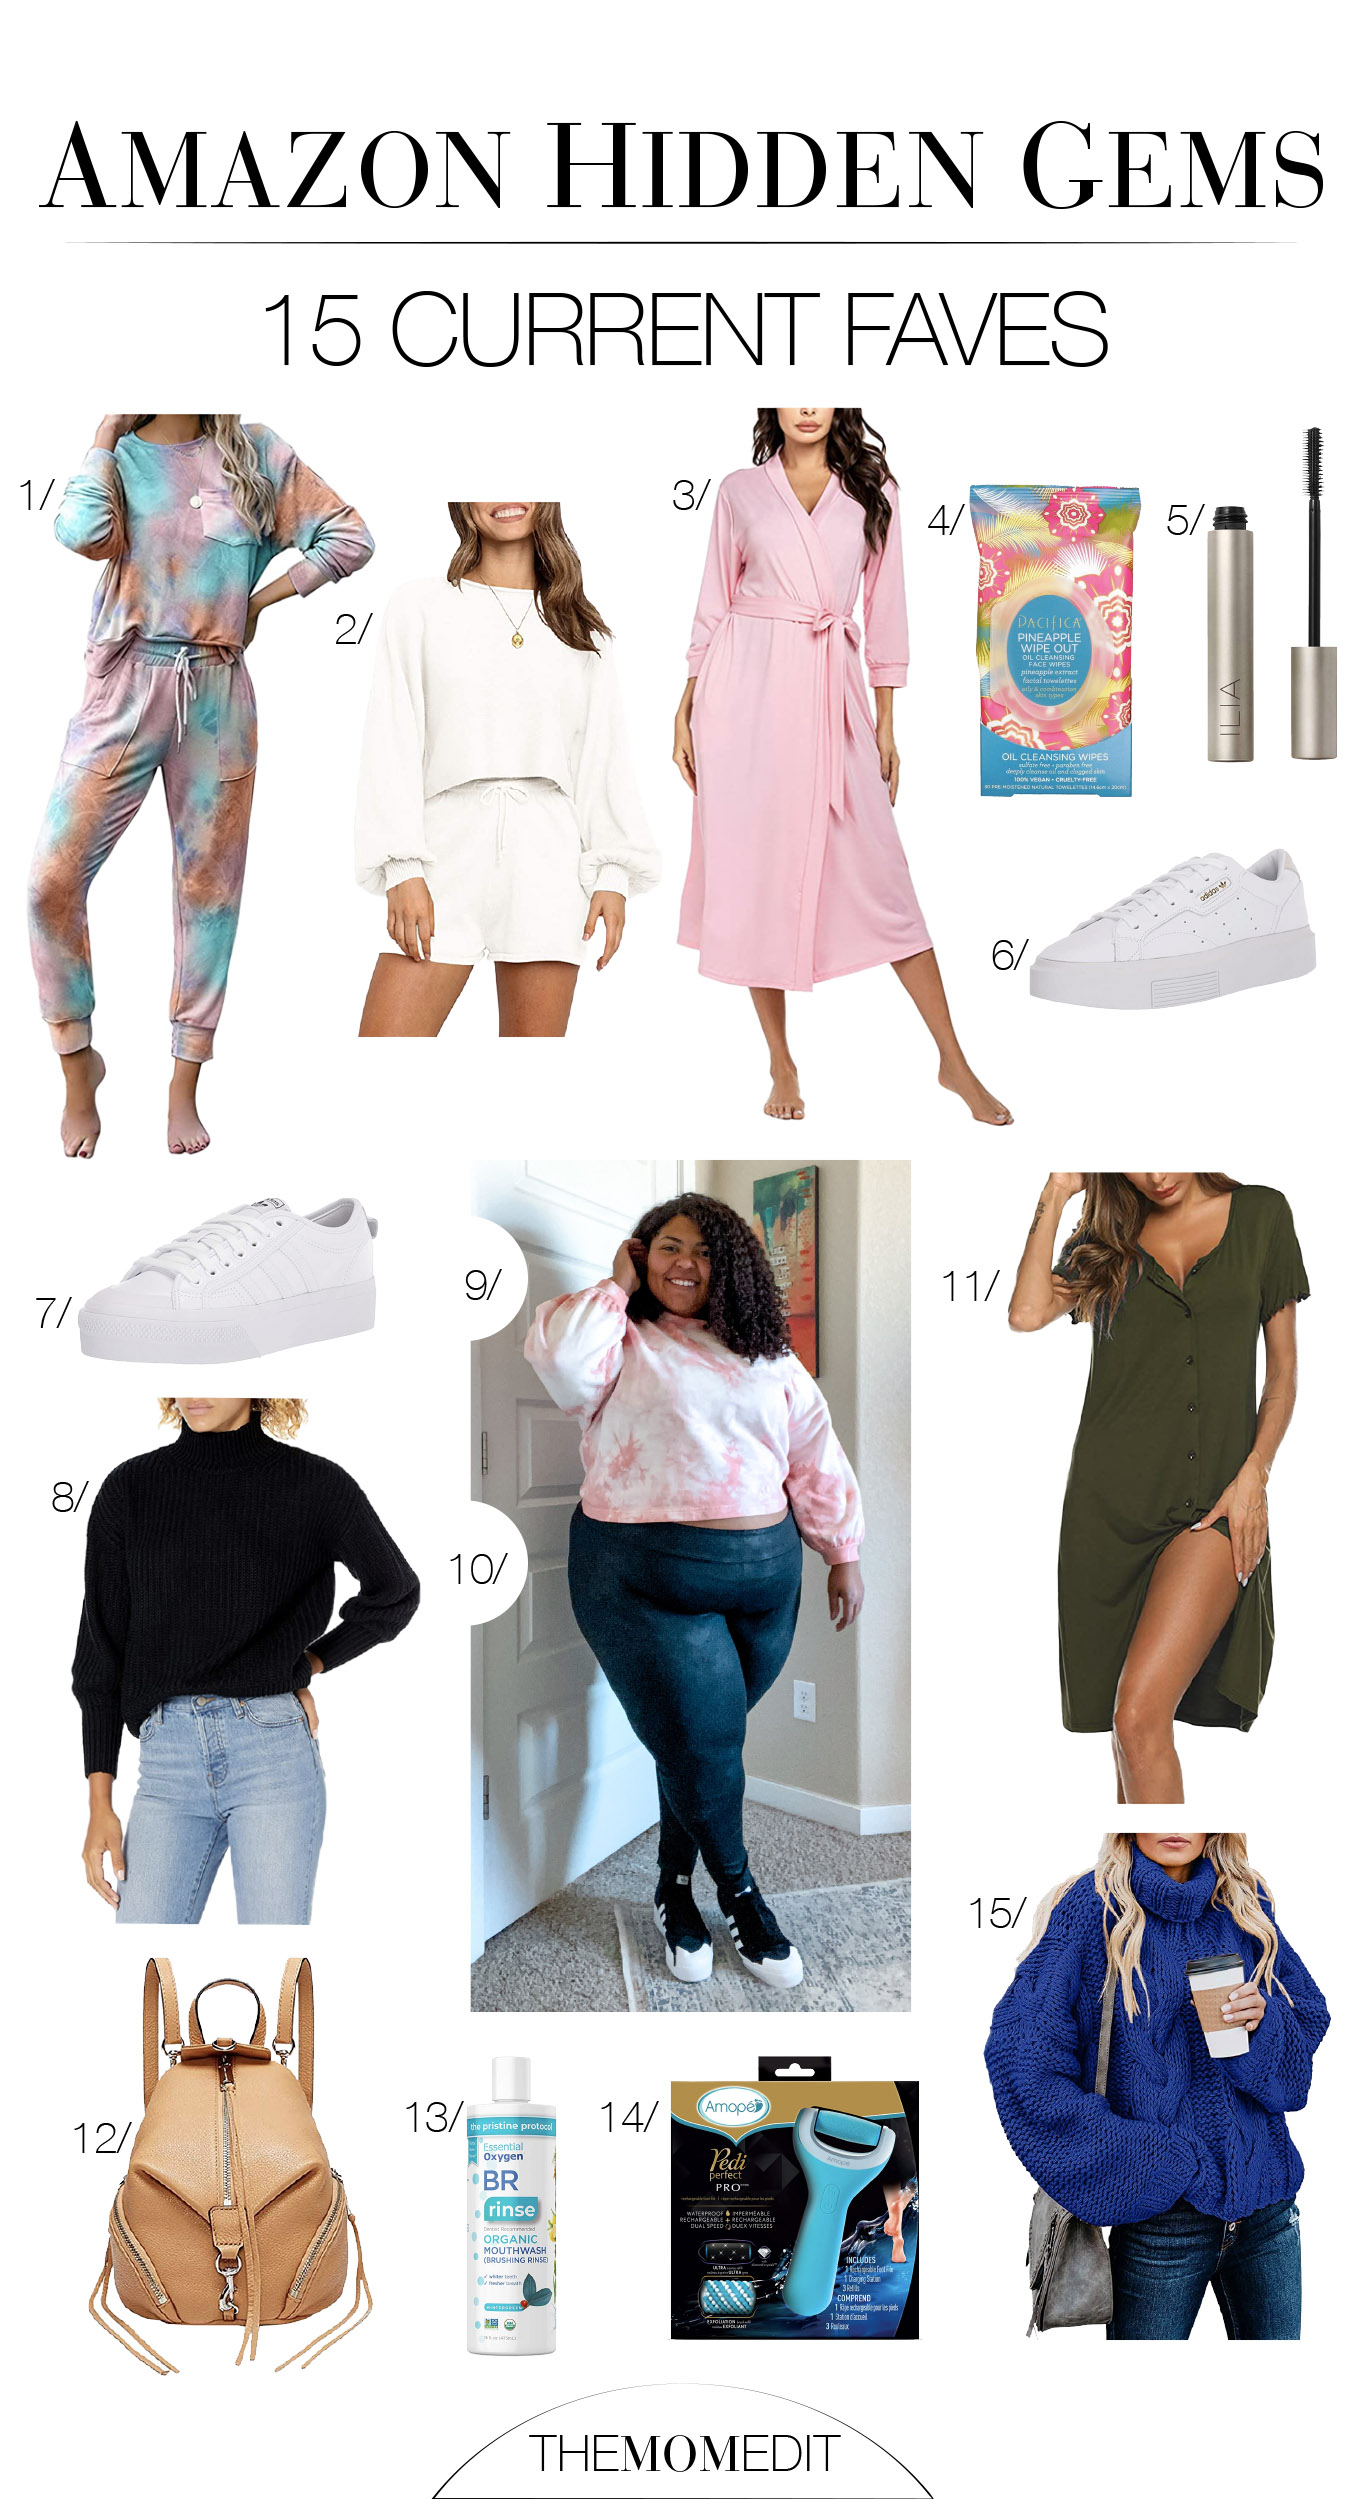 In addition to Amazon fashion finds, our Prime membership has us trying The Drop. We love tie-dye loungewear, adidas sneaks & Ilia beauty, too.